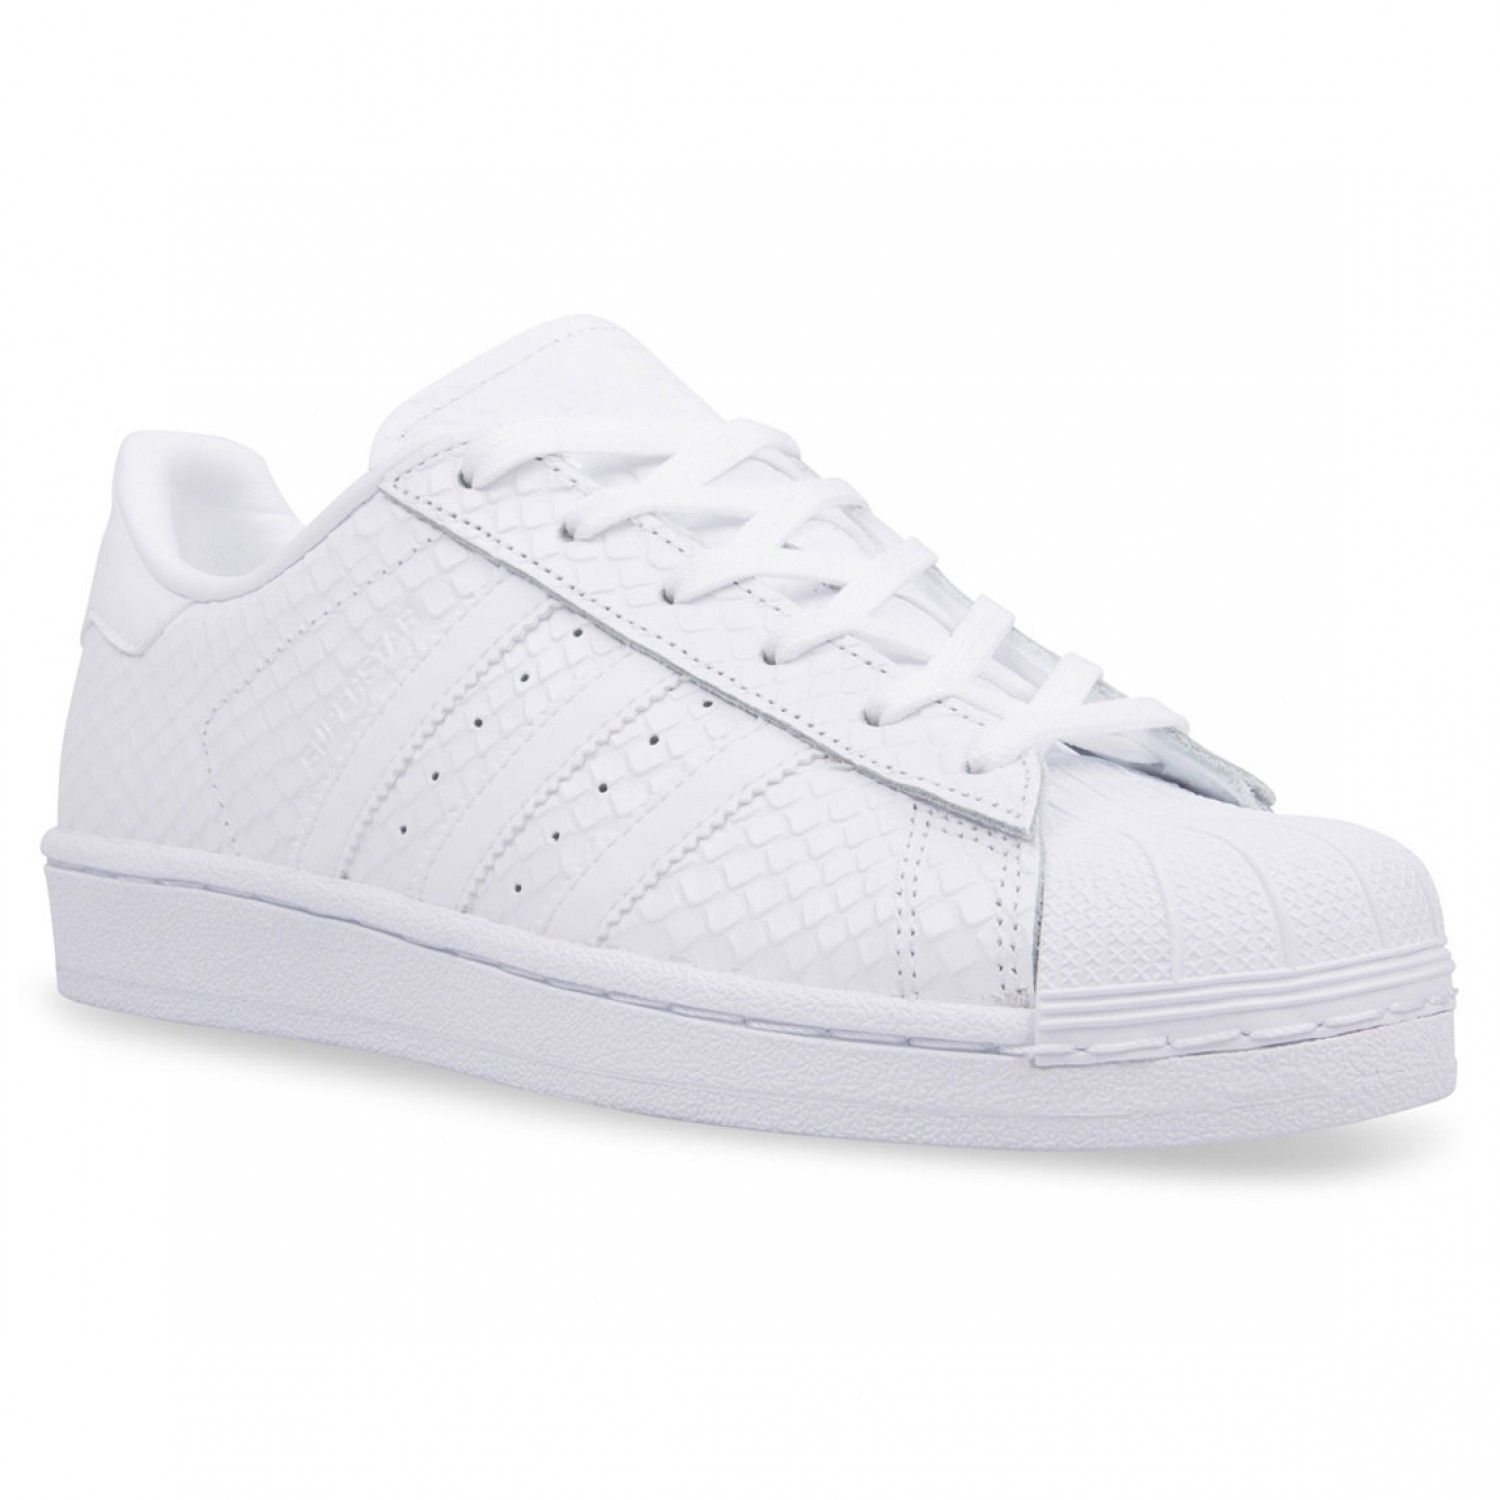 adidas Originals SUPERSTAR WOMENS in 2020 Adidas superstar  Adidas superstar